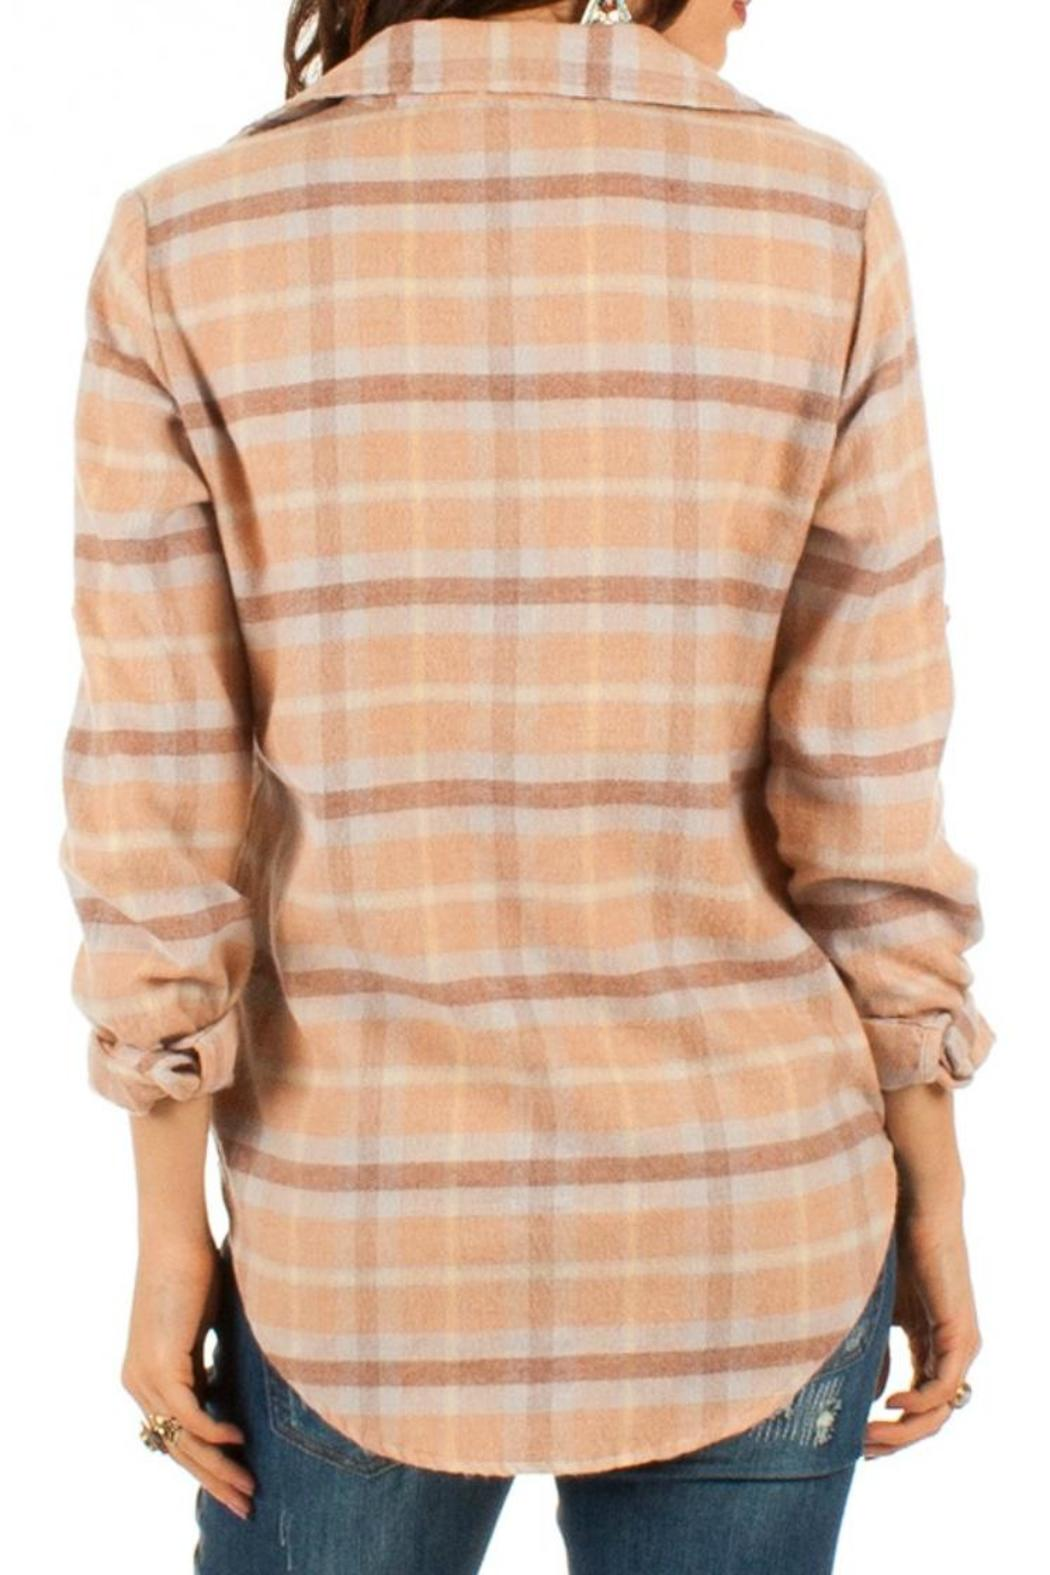 White Crow Cream Plaid Top From New Jersey By Wink